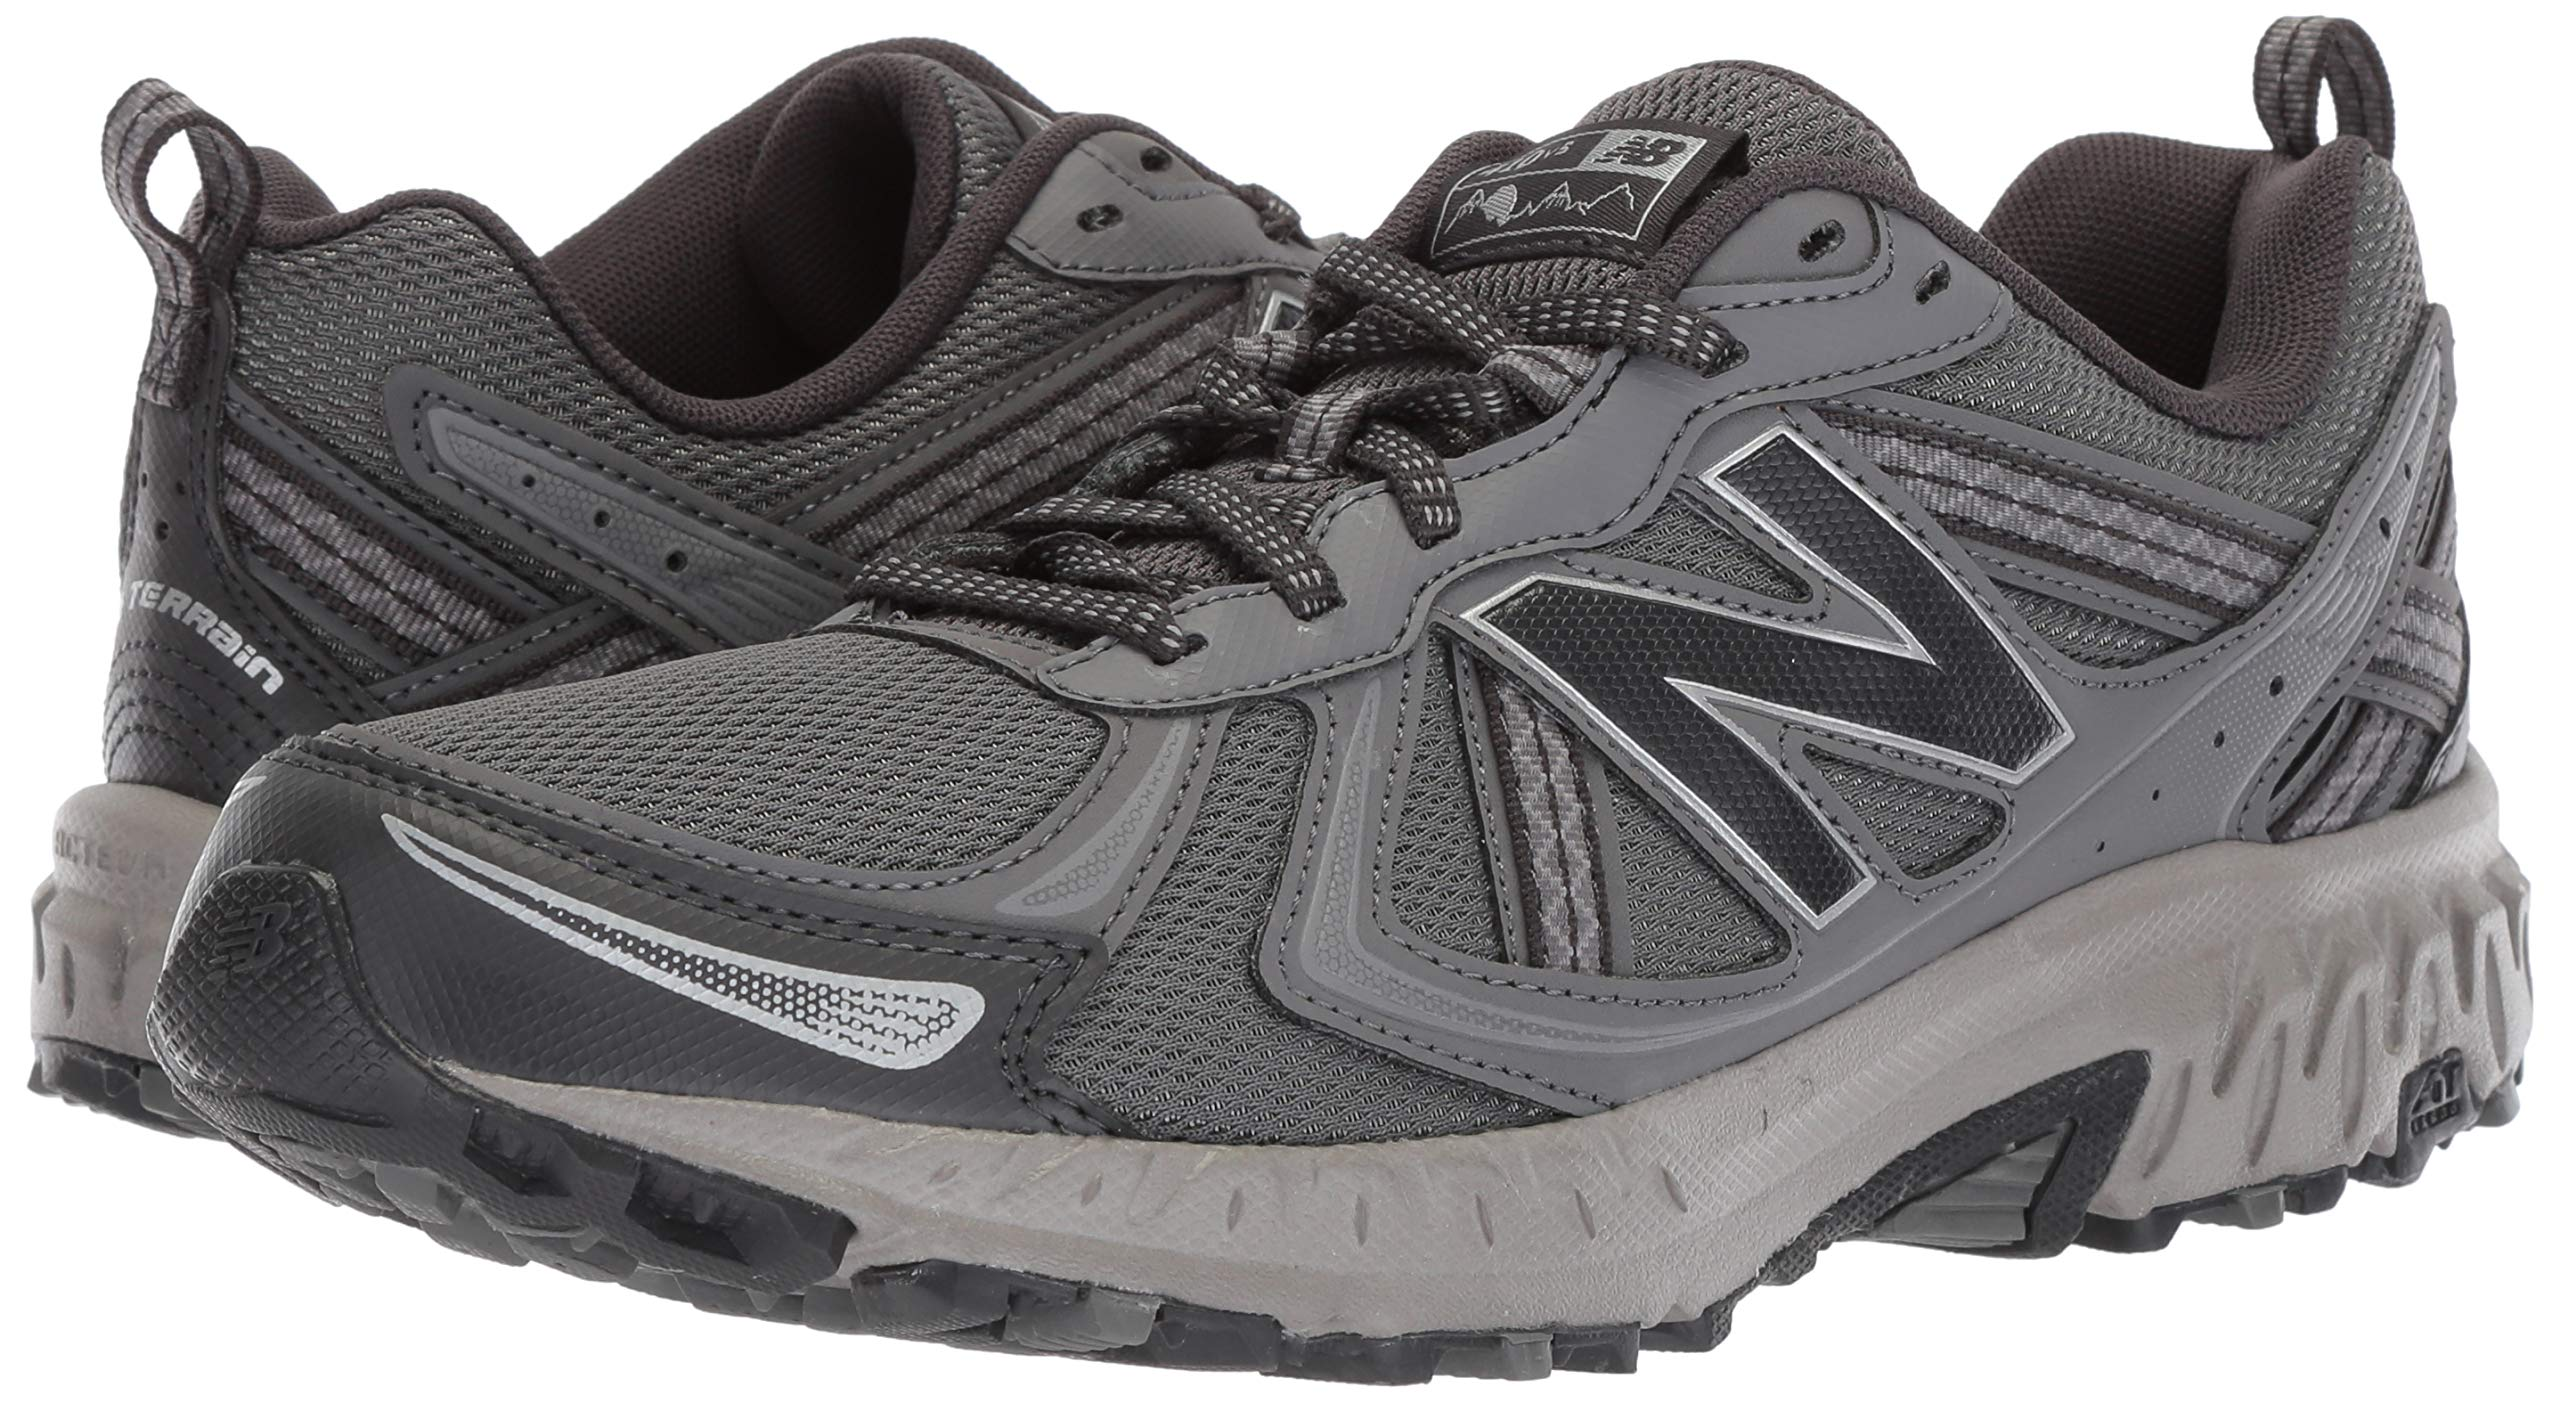 New Balance Men's 410v5 Cushioning Trail Running Shoe, Castlerock/Phantom, 12 D US by New Balance (Image #6)